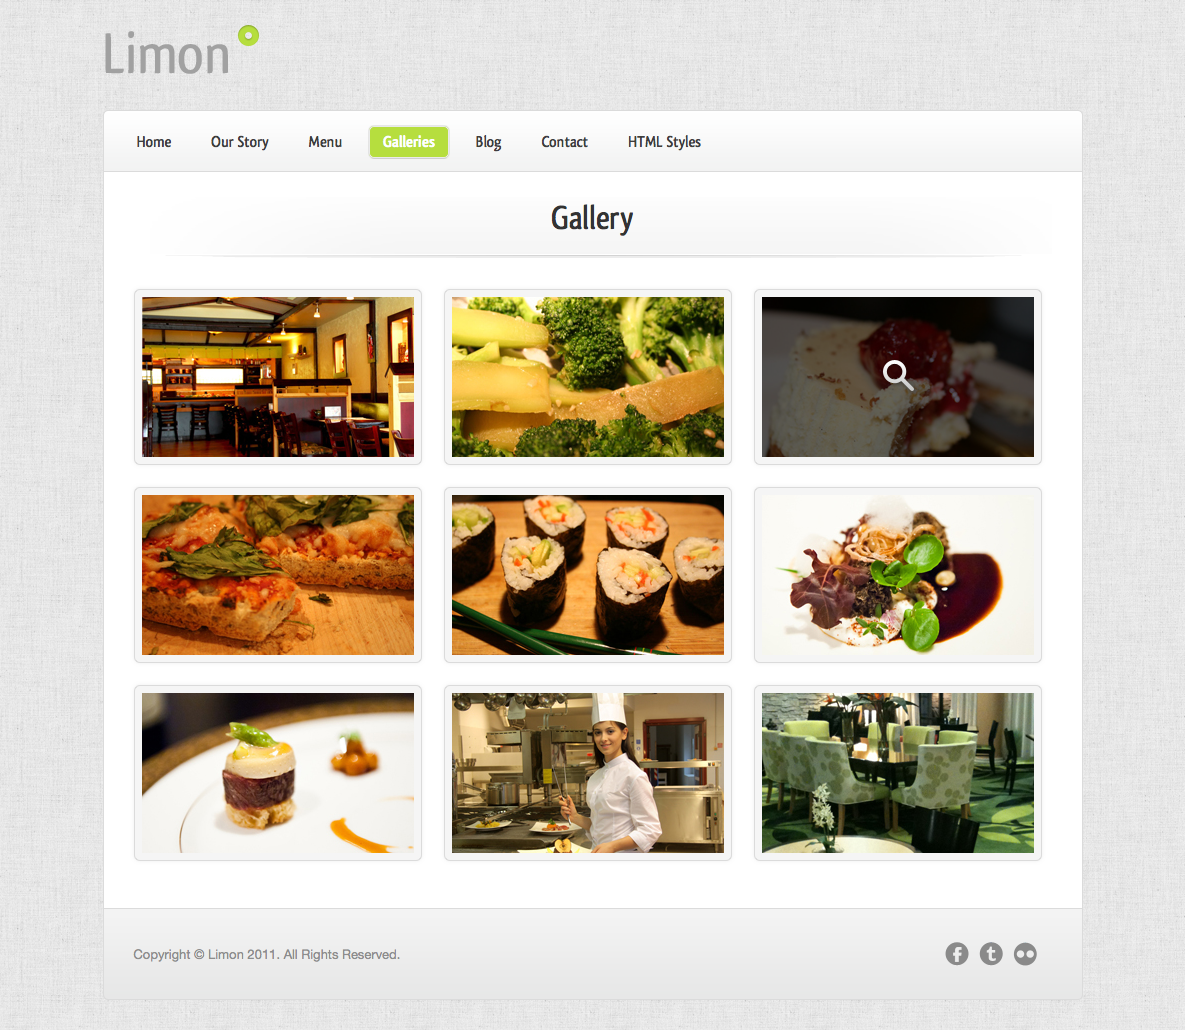 Limon - A Restaurant and Spa Theme - Gallery - A full-featured query slideshow, alternate thumbnail galleries are also included.